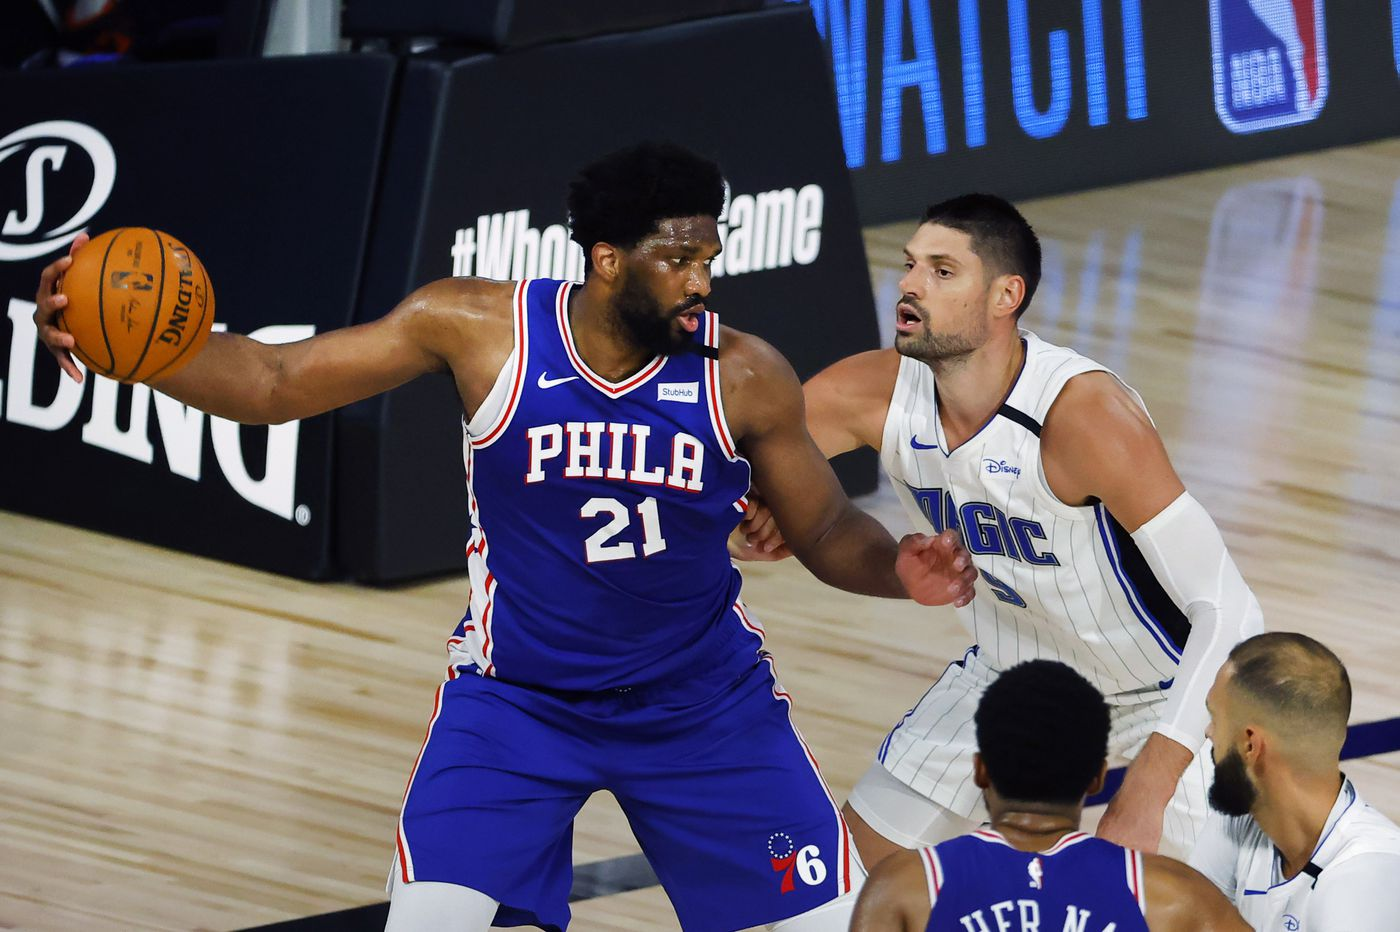 Sixers coach Brett Brown sees an older, more mature leader in Joel Embiid